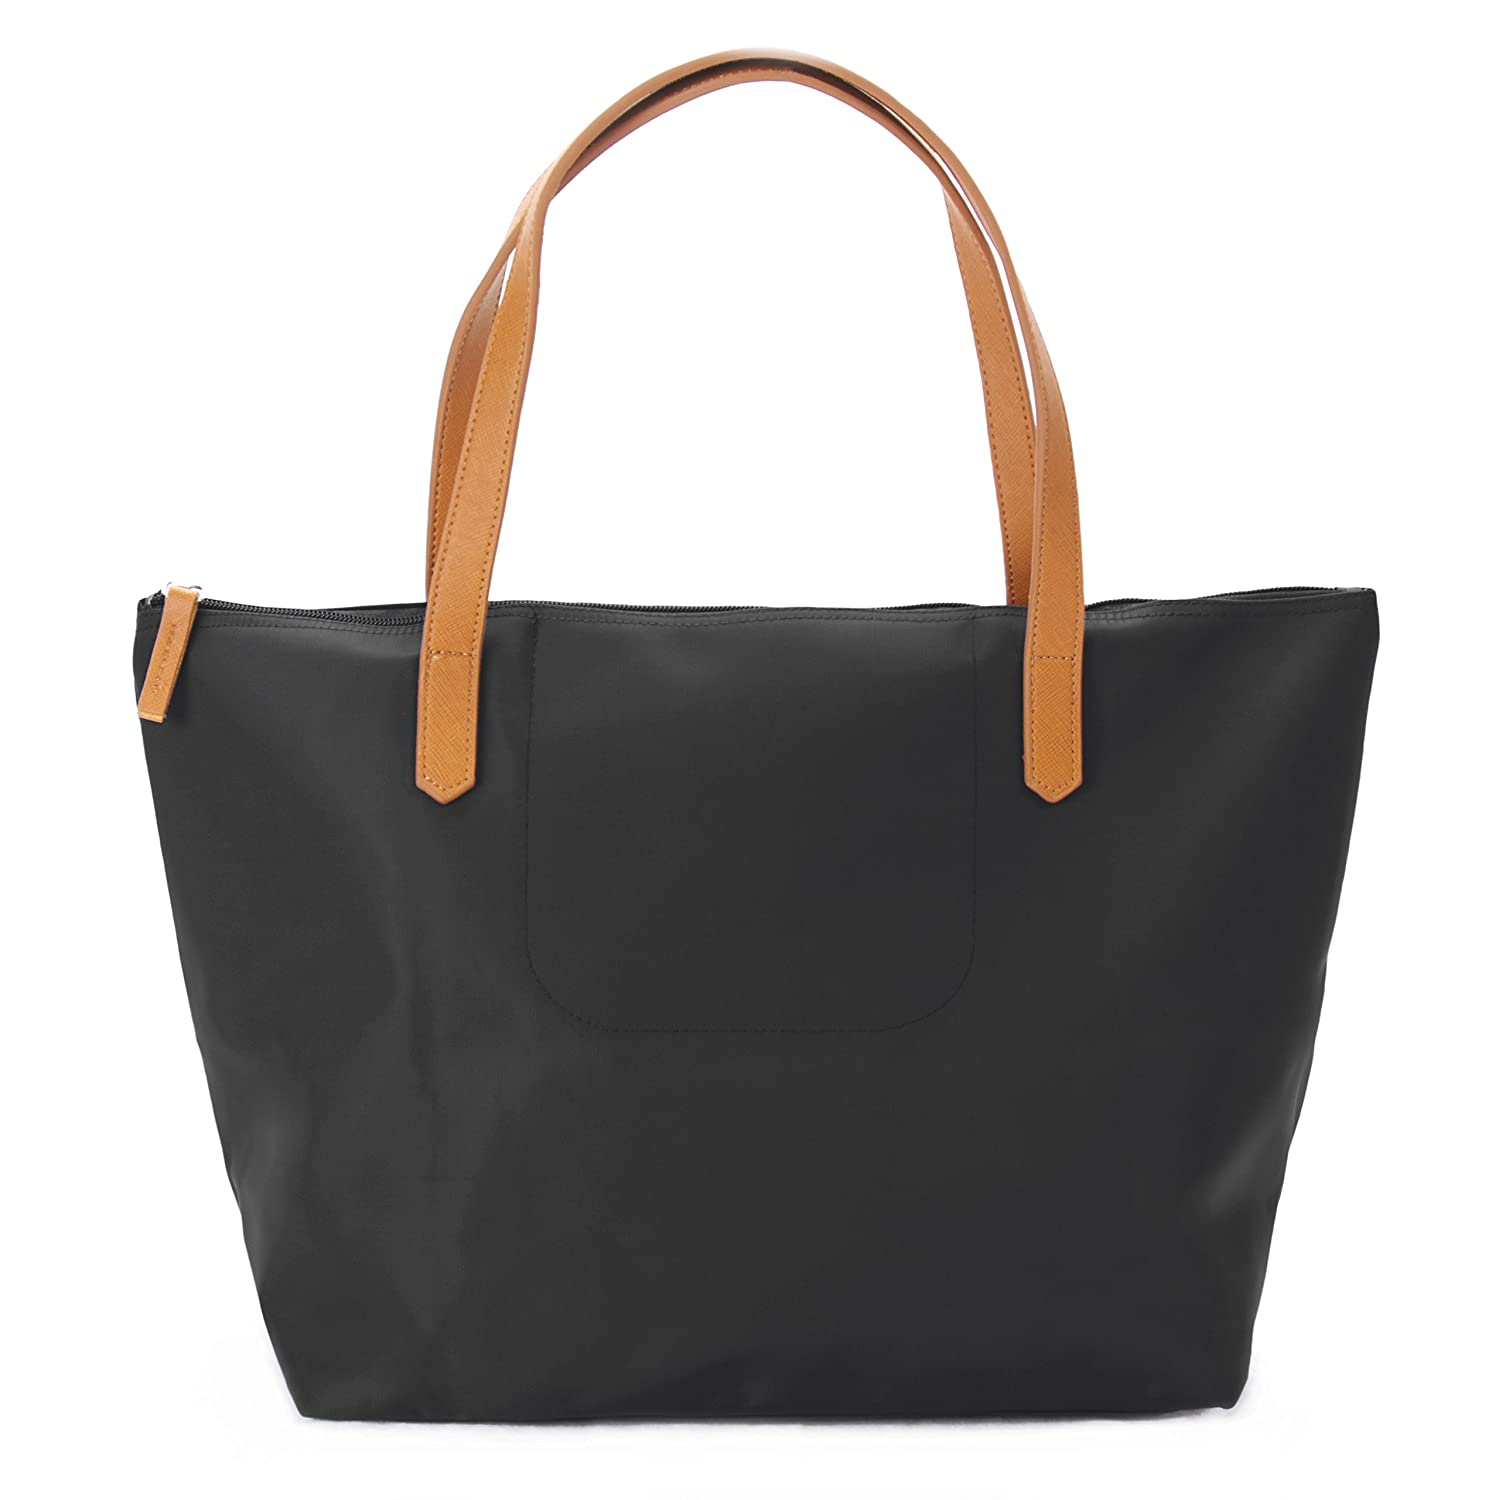 95fb2cd39 Amazon.com: Korvara Nylon Tote Bag - Nylon & Vegan Saffiano Leather Basic  Shoulder Handbag for Women: Clothing